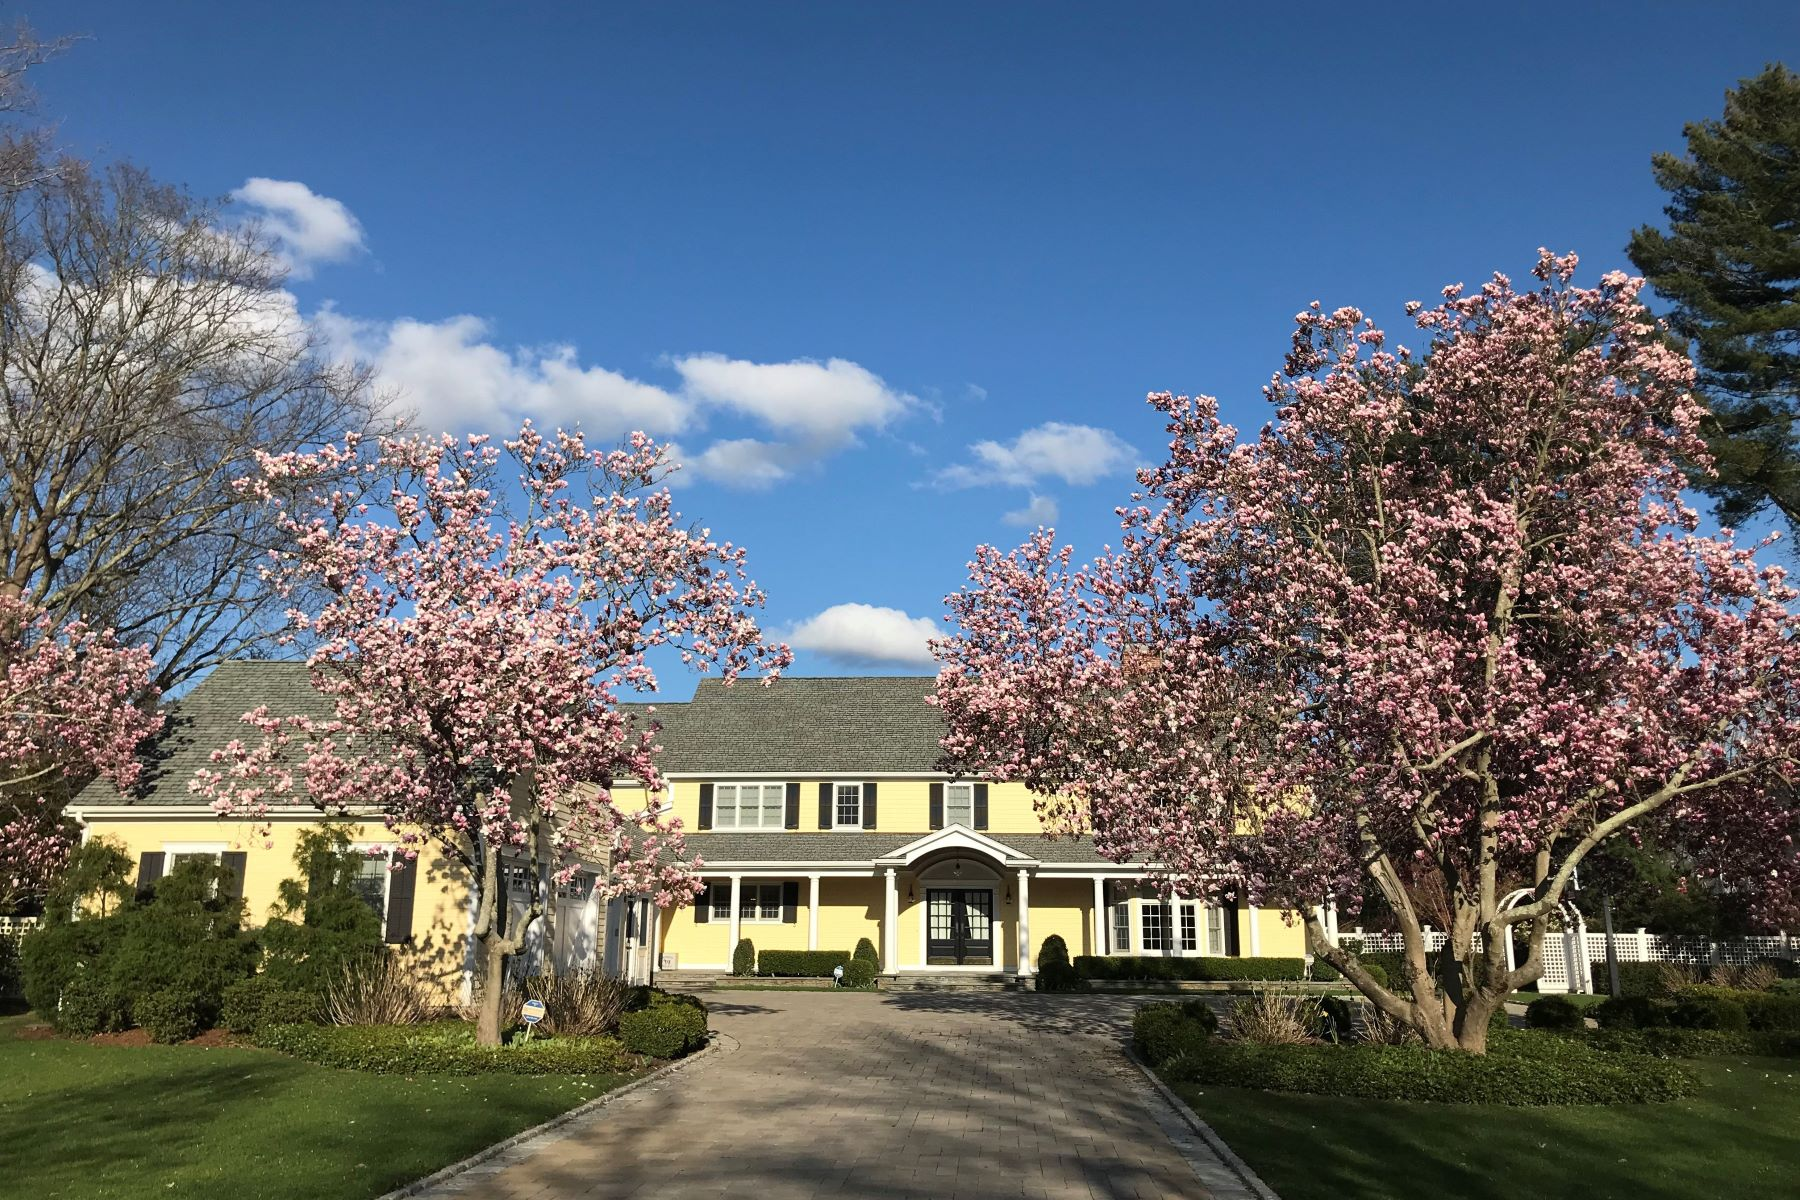 Single Family Homes for Sale at 206 Rumstick Road, Barrington, RI 206 Rumstick Road Barrington, Rhode Island 02806 United States